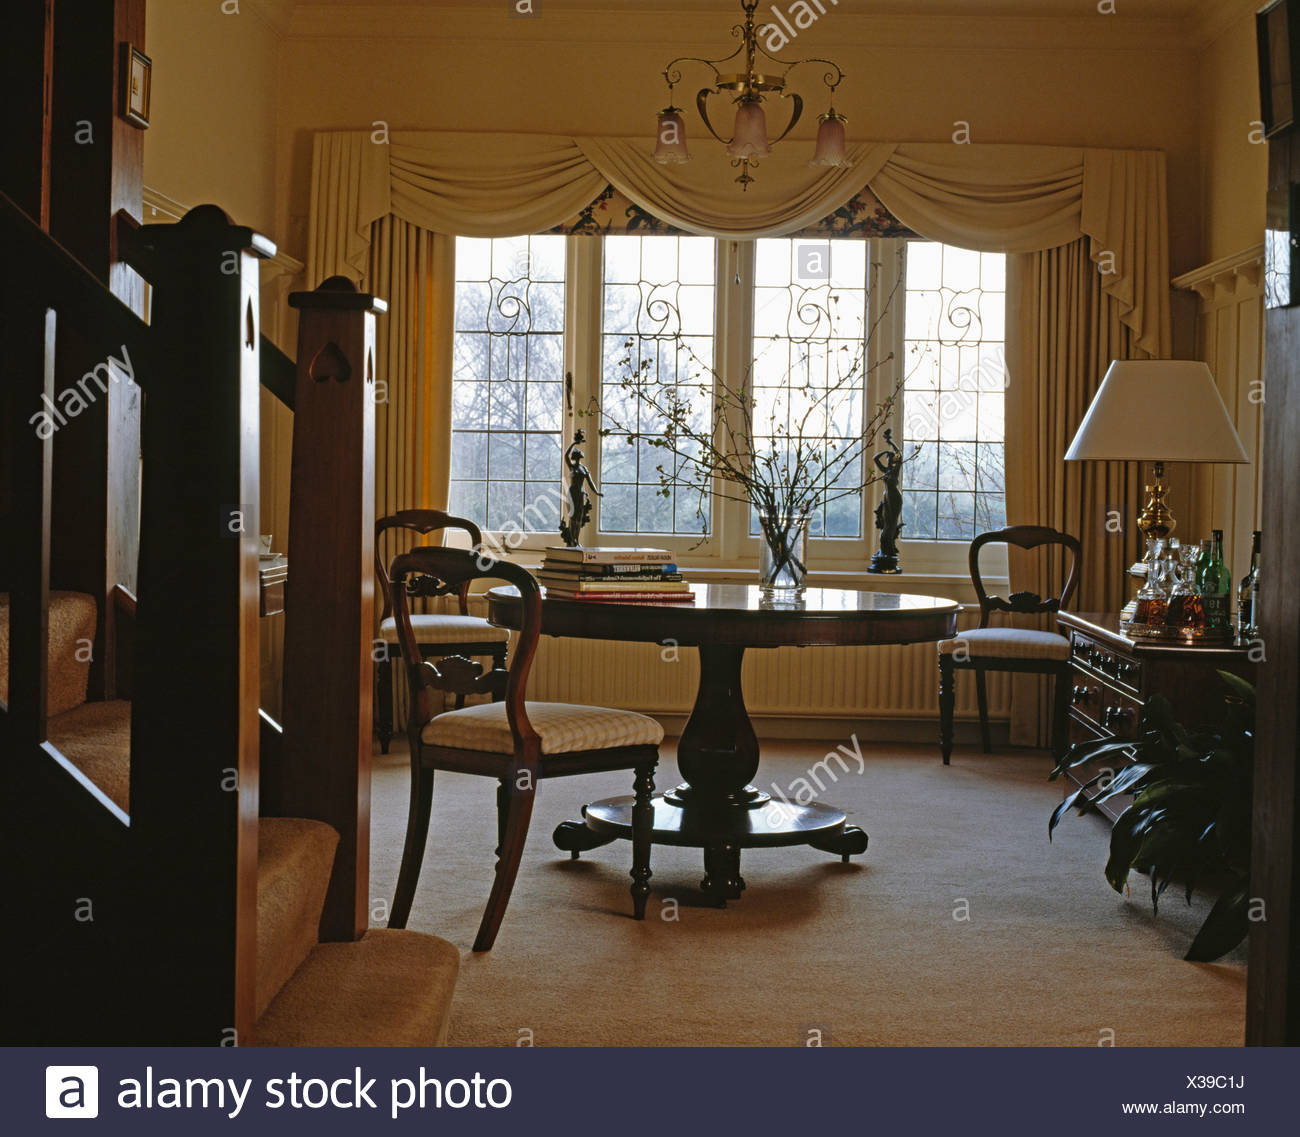 Victorian Table And Chairs In Country Hall Dining Room With Cream Carpet And Window With Cream Swagged Curtains Stock Photo Alamy